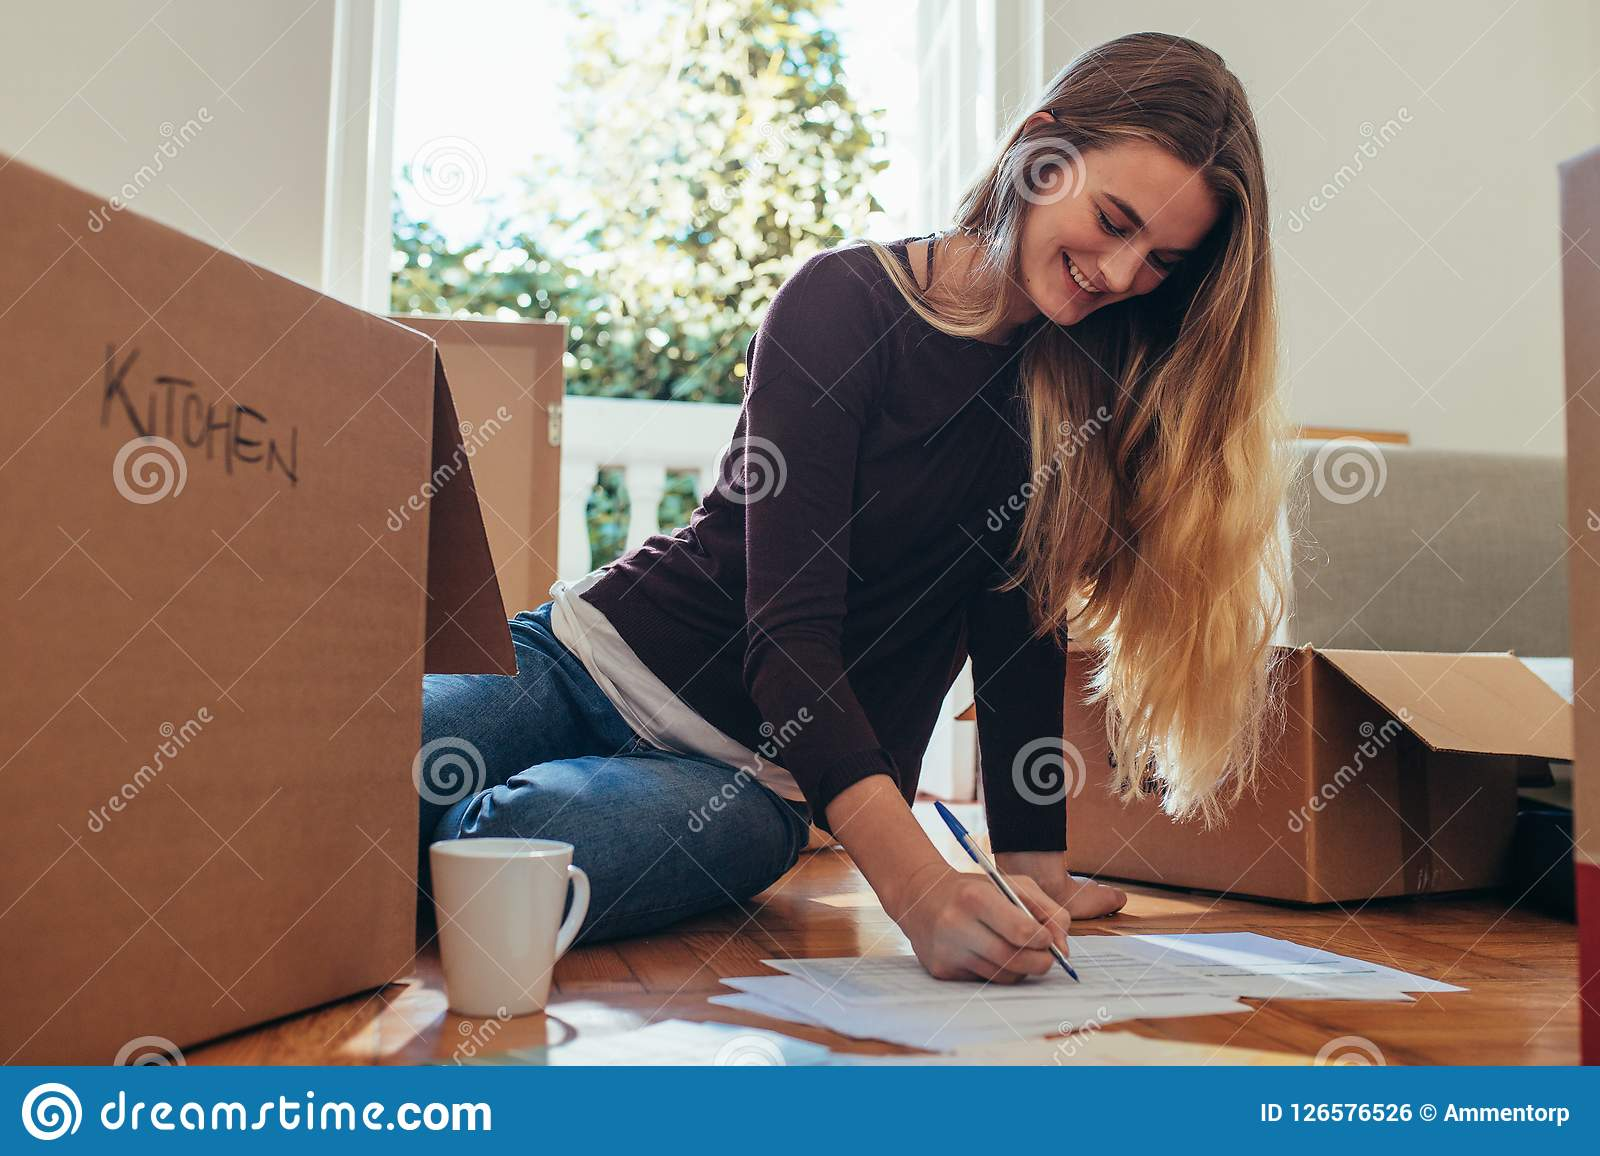 Smiling Woman Sitting With Packing Boxes On Floor Making A List